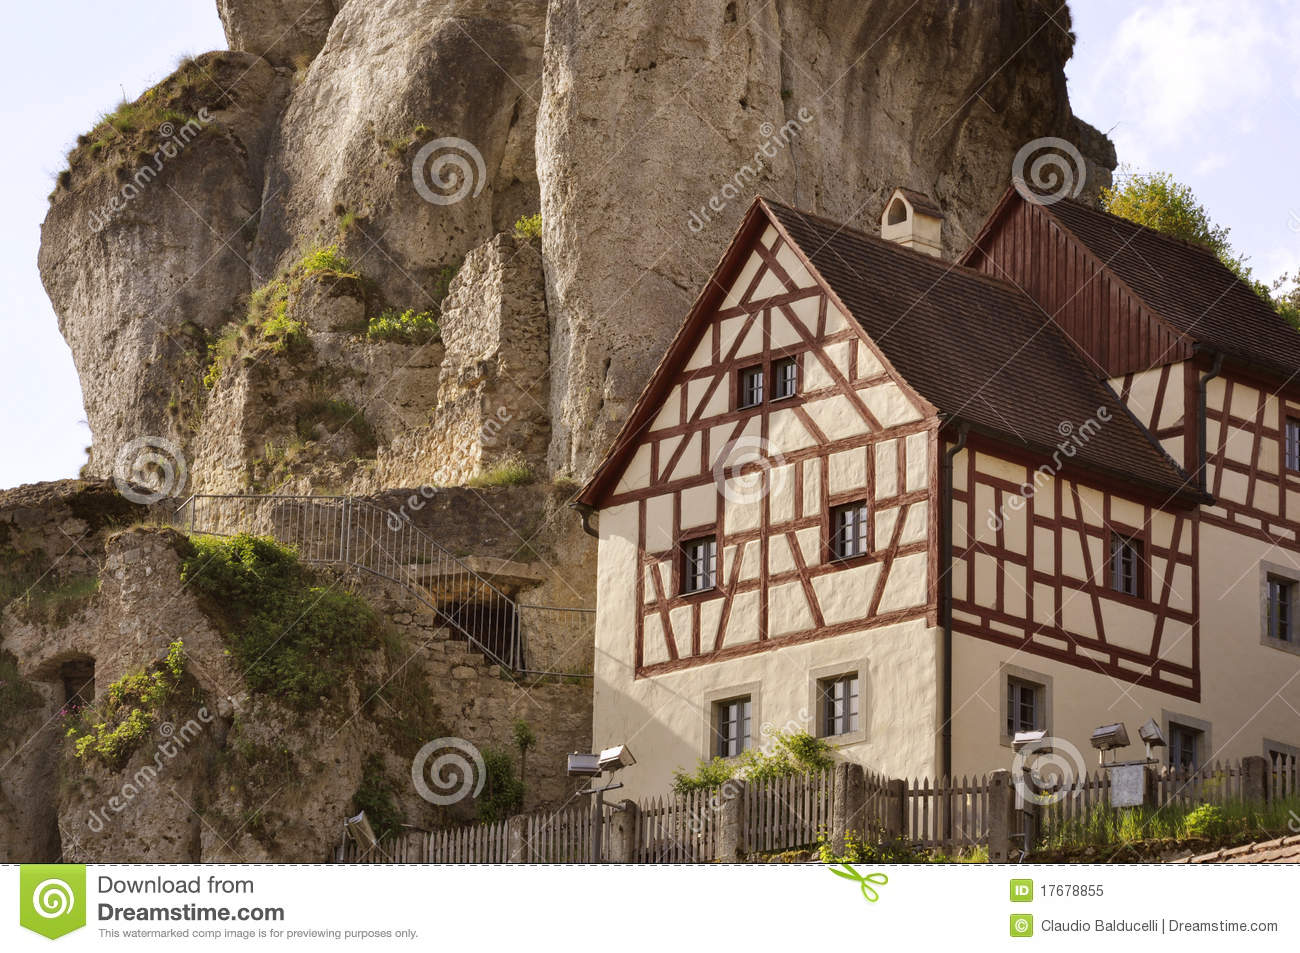 Typical house in North Bavaria, Germany